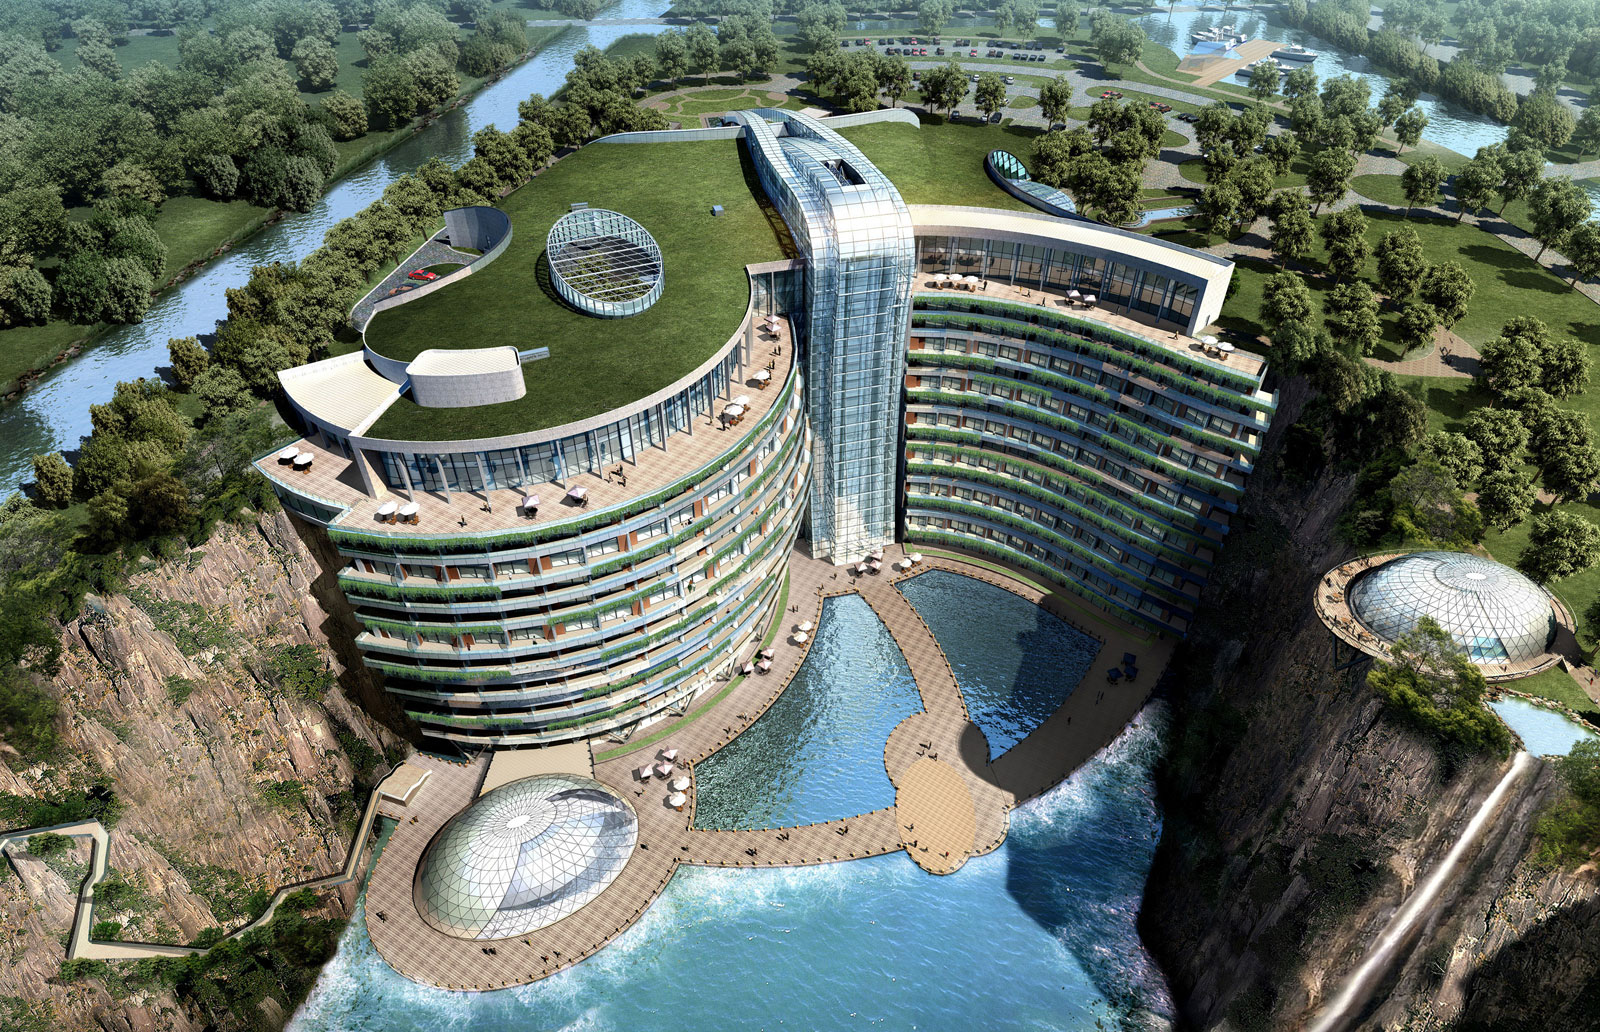 Shimao-Songjiang-Quarry-Hotel-Wonderland-WaterWorld-by-Atkins-001.jpg